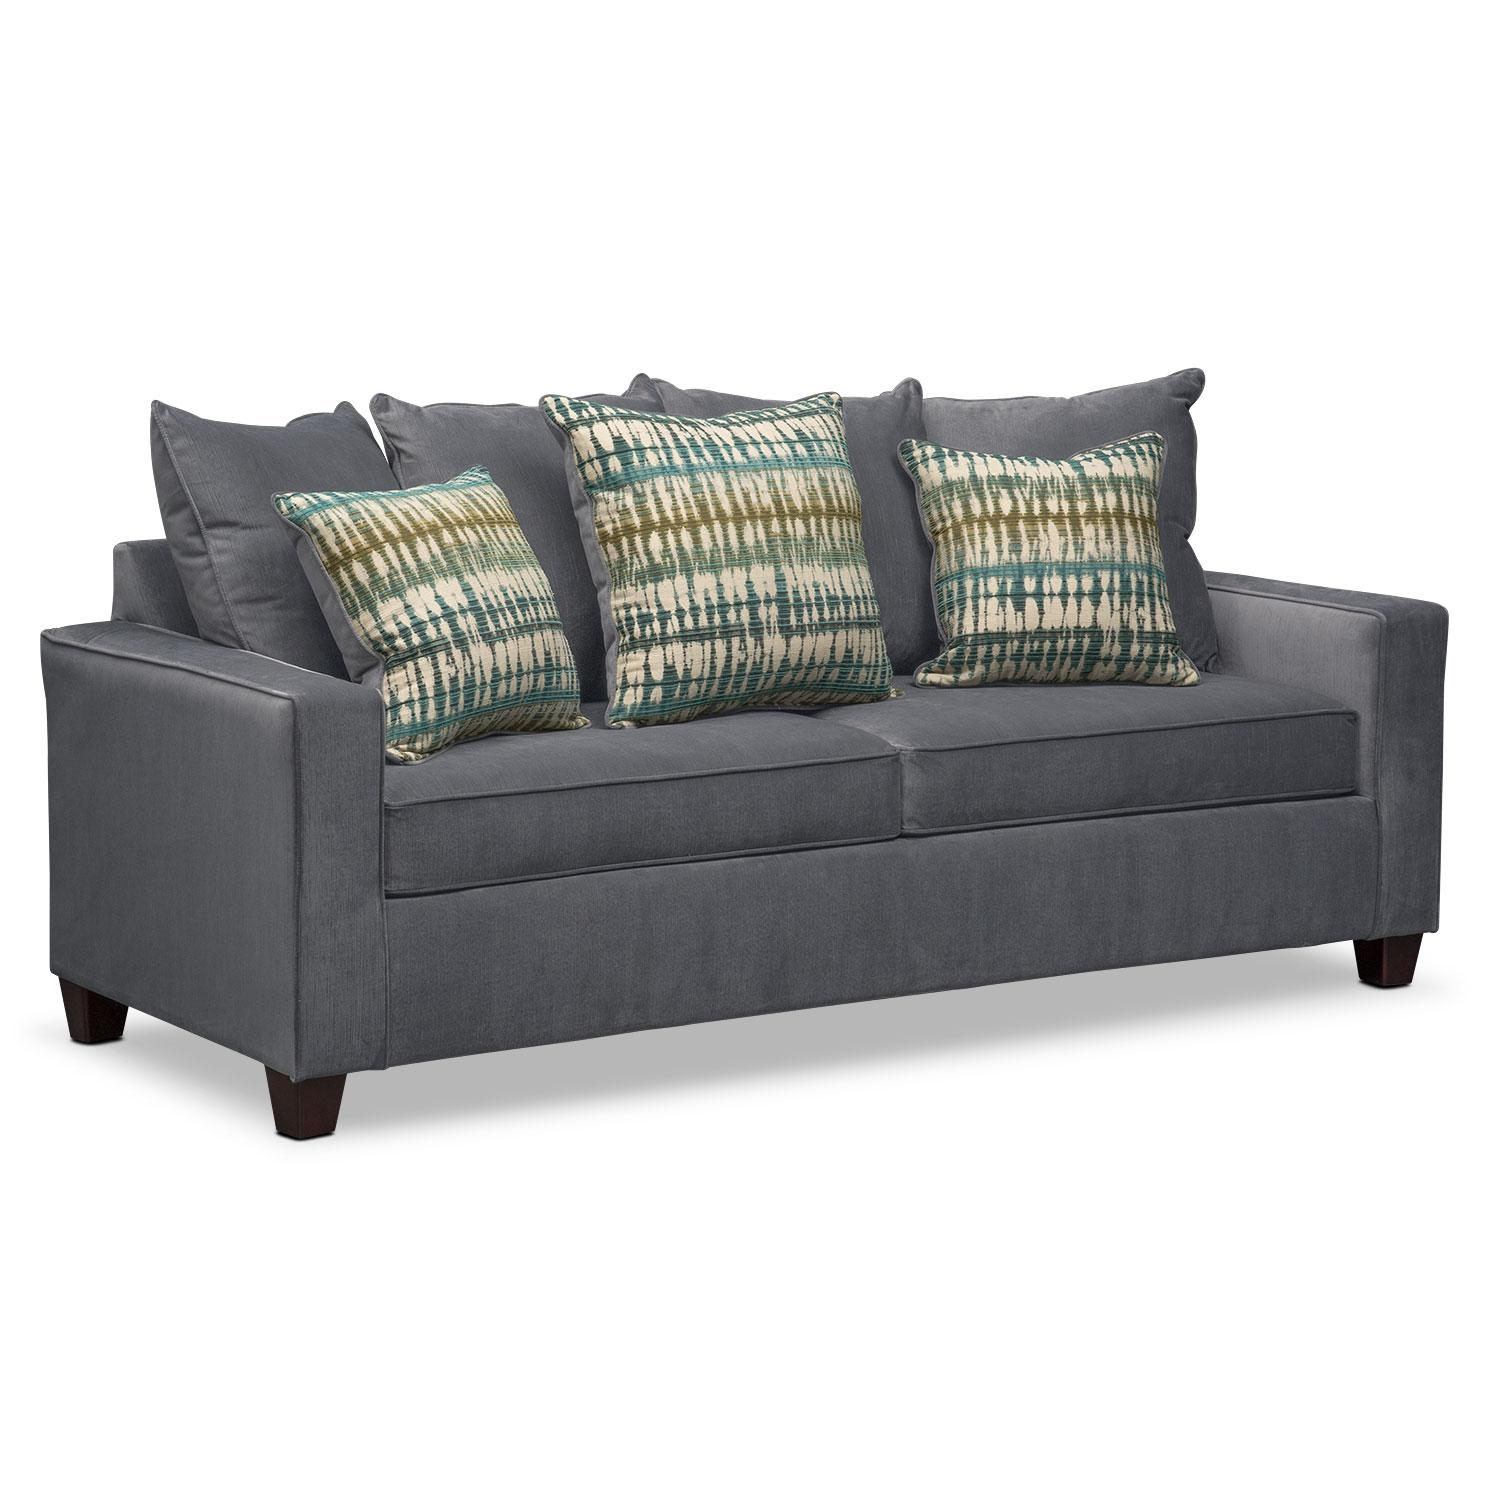 best memory foam sleeper sofas led sofa 20 collection of queen convertible ideas